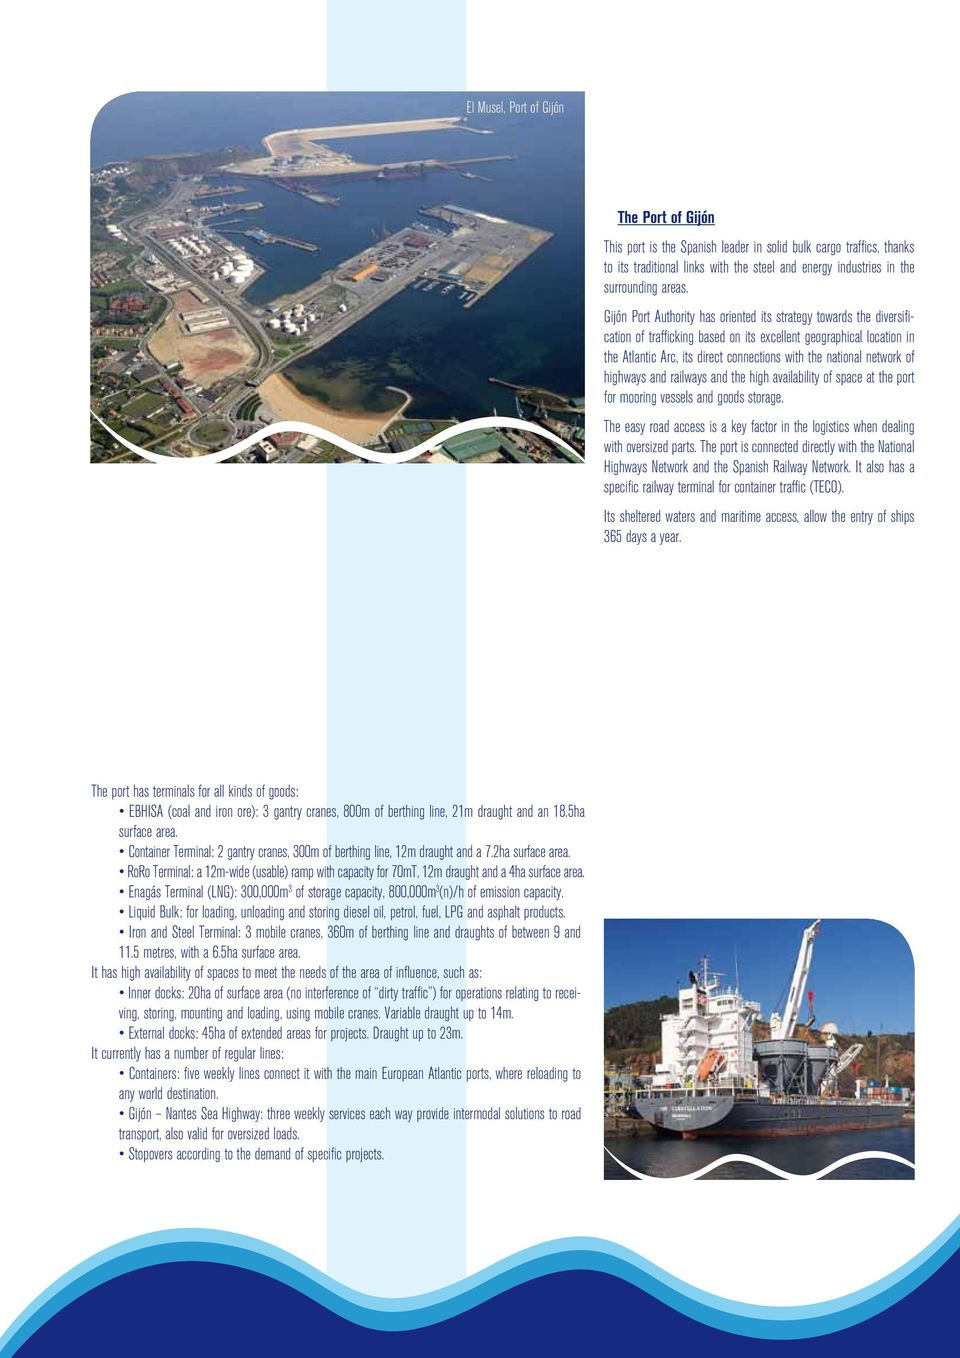 network of highways and railways and the high availability of space at the port for mooring vessels and goods storage.